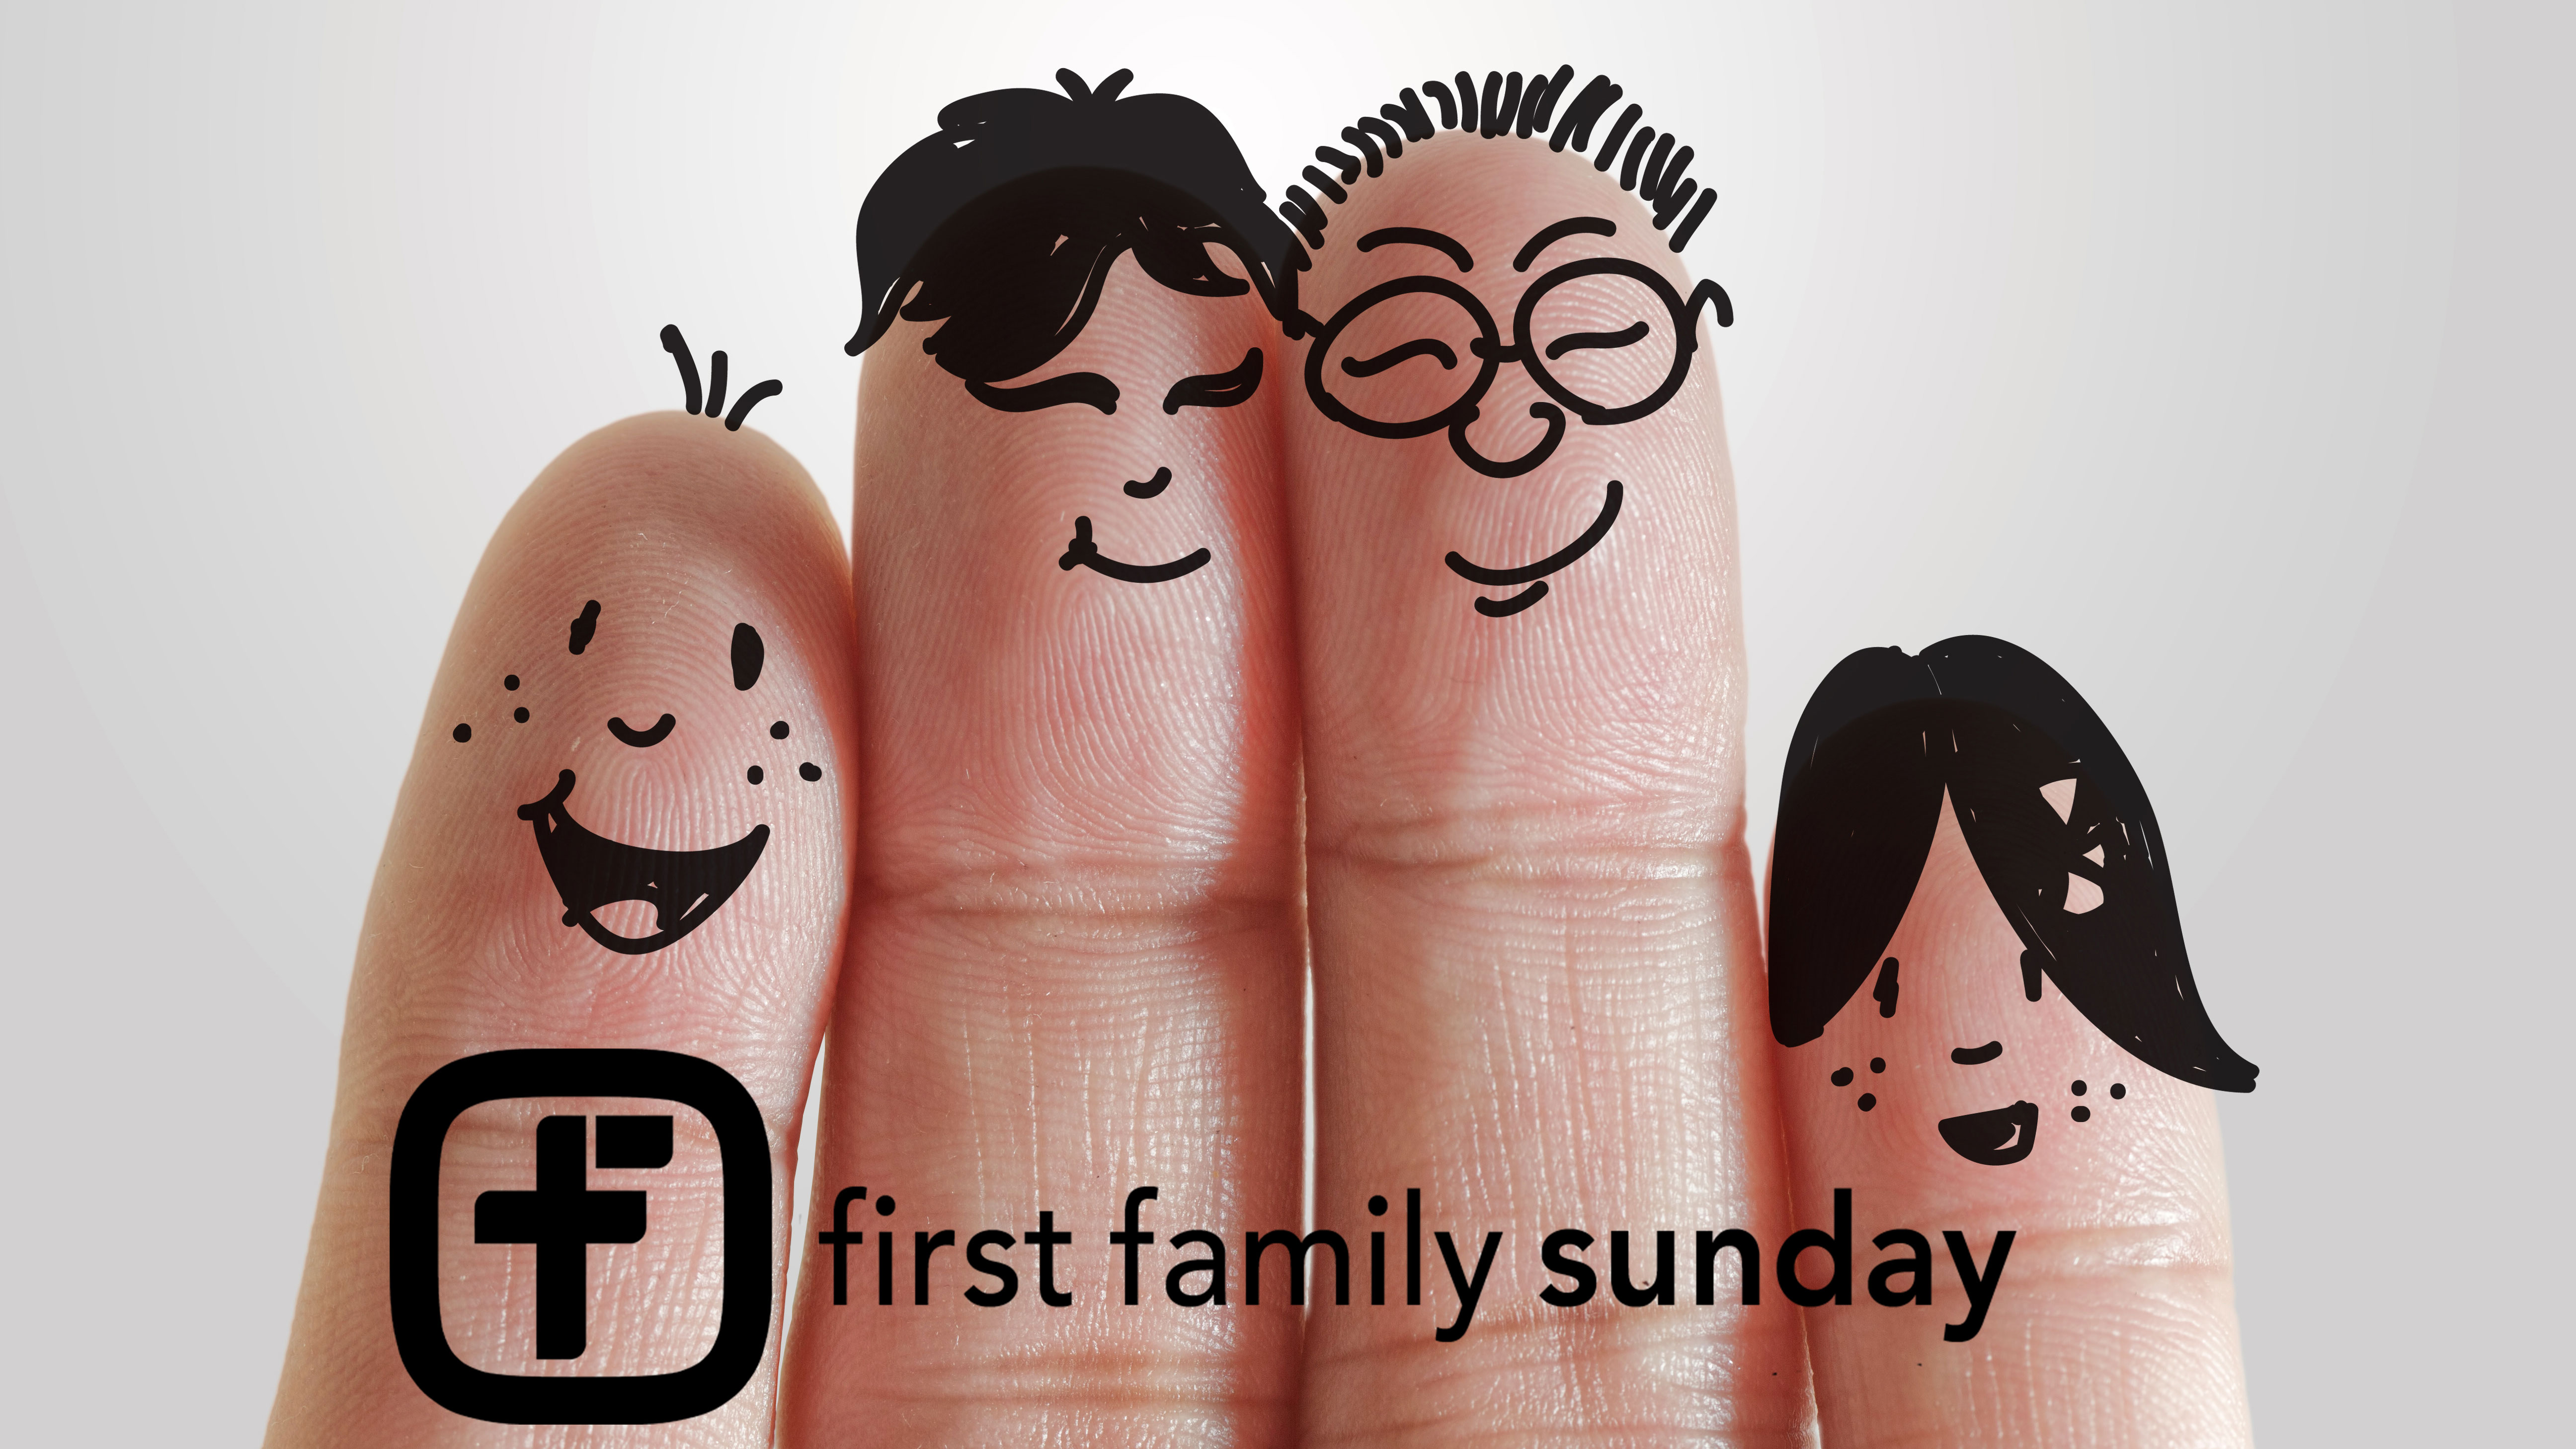 first-family-sunday-fingers